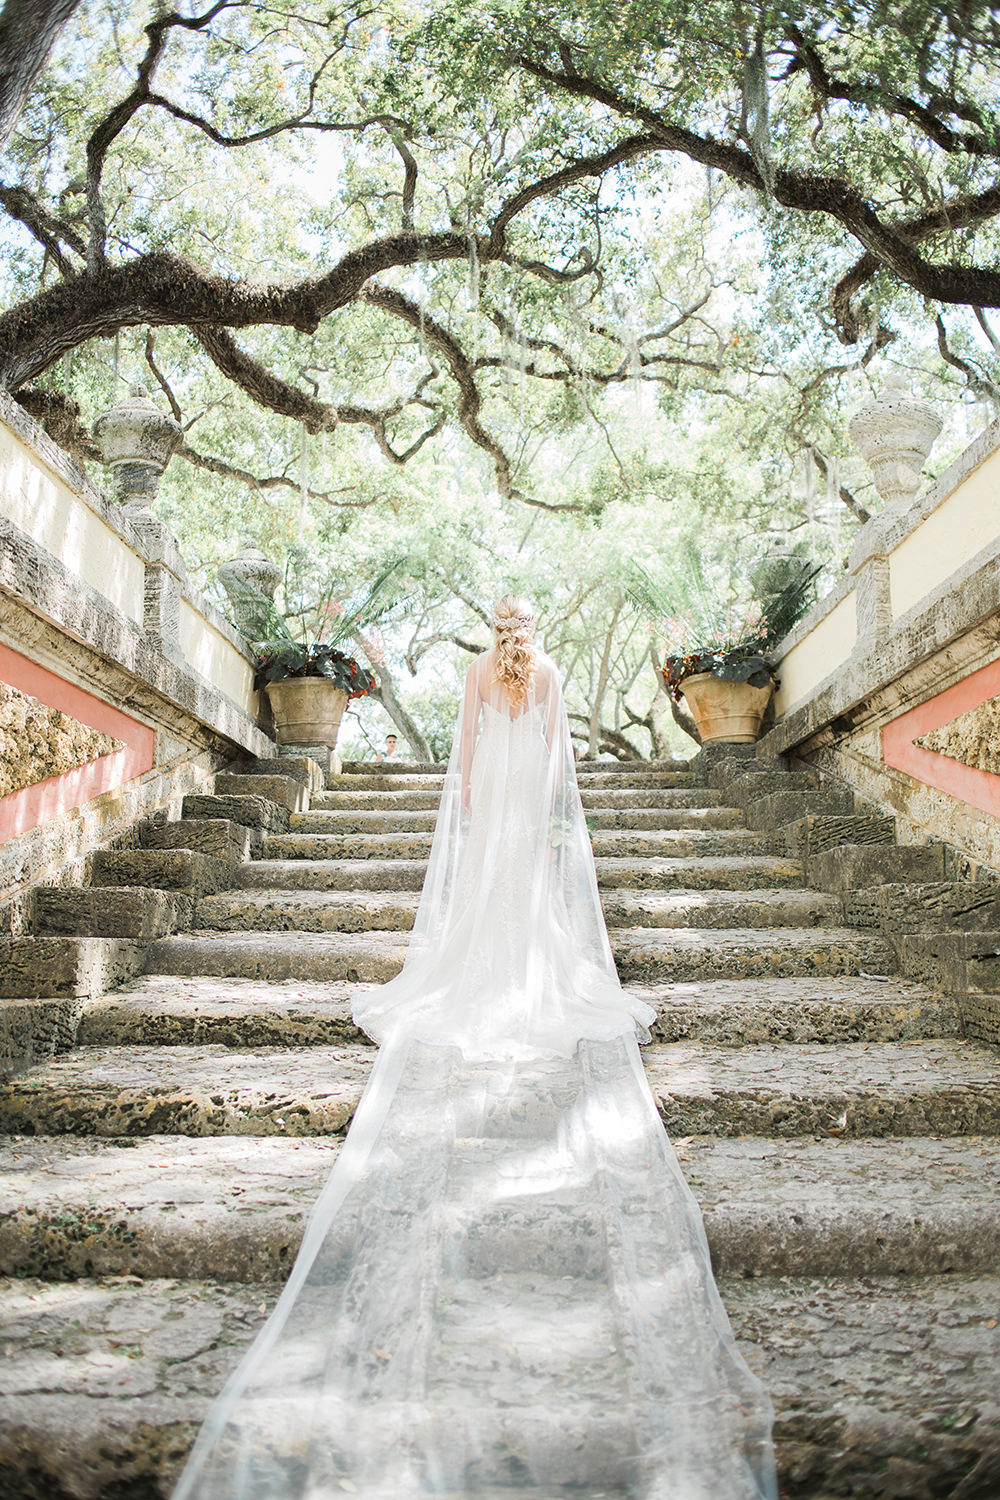 dramatic wedding veils - photo by Erica J Photography https://ruffledblog.com/old-world-wedding-editorial-at-vizcaya-museum